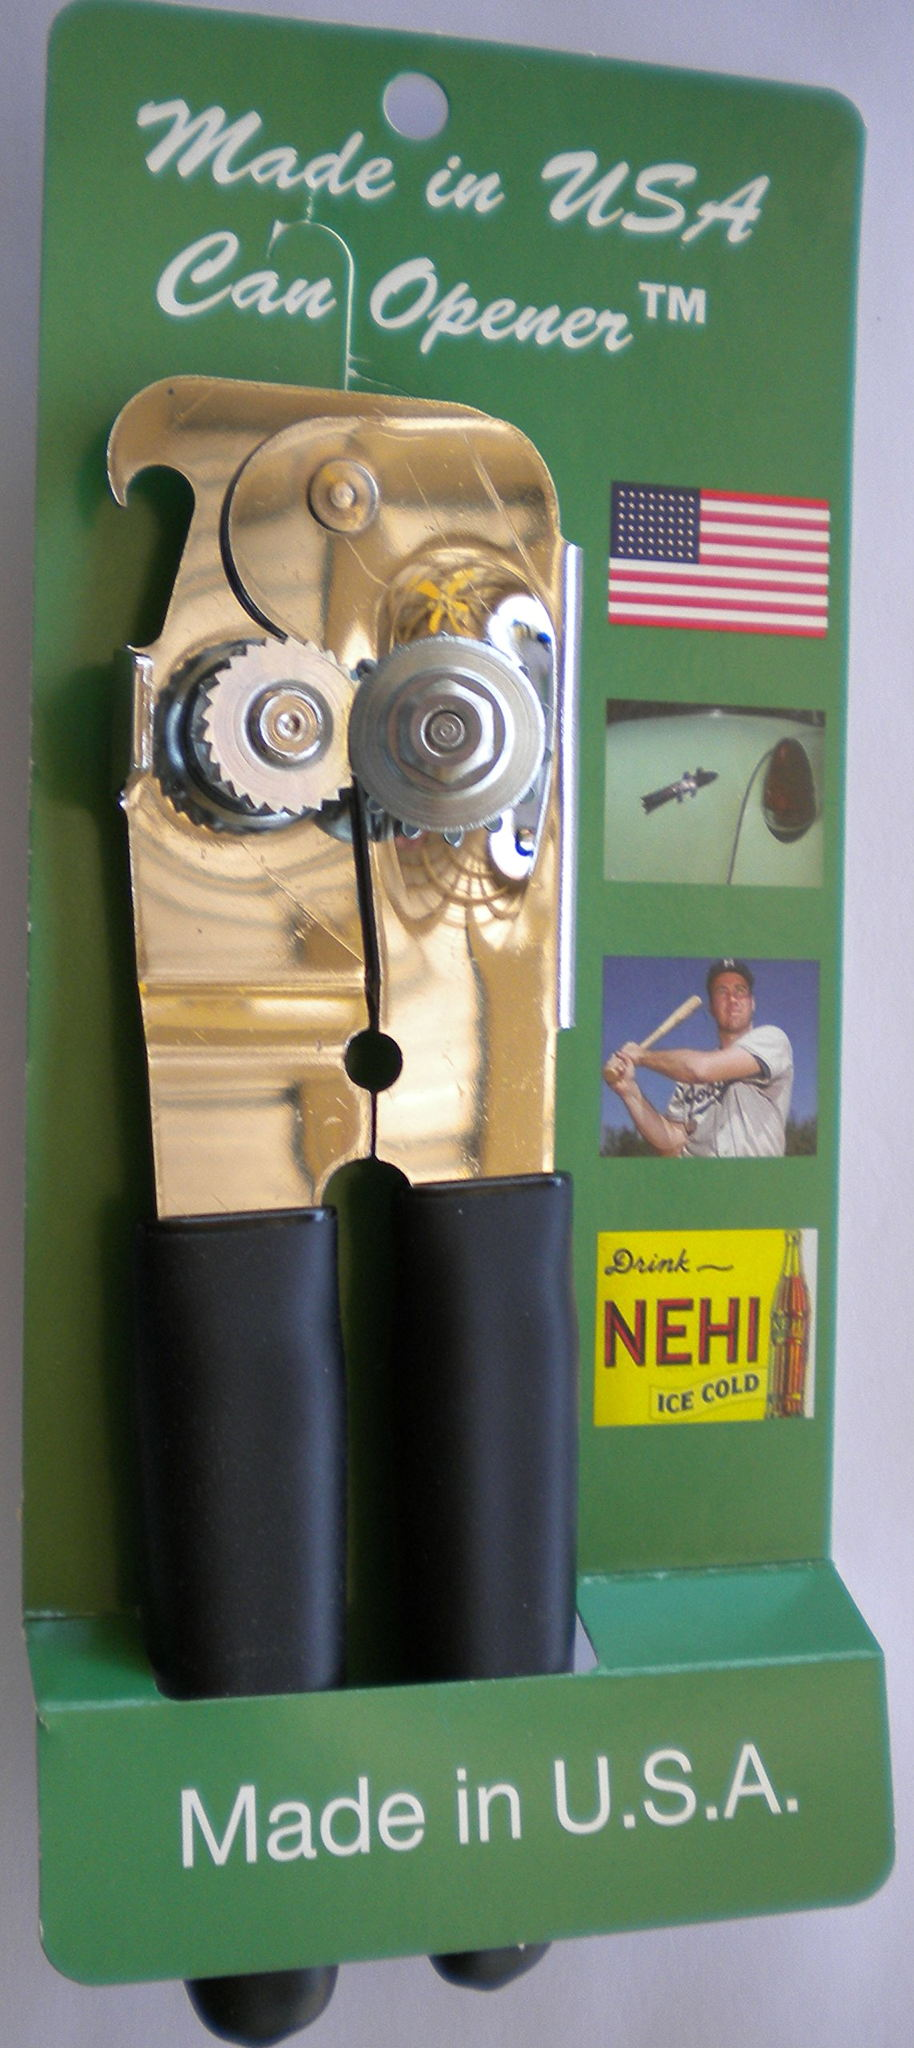 Ez Duz It Deluxe Manual Can Opener Vs Made In Usa Manual Can Opener Slant